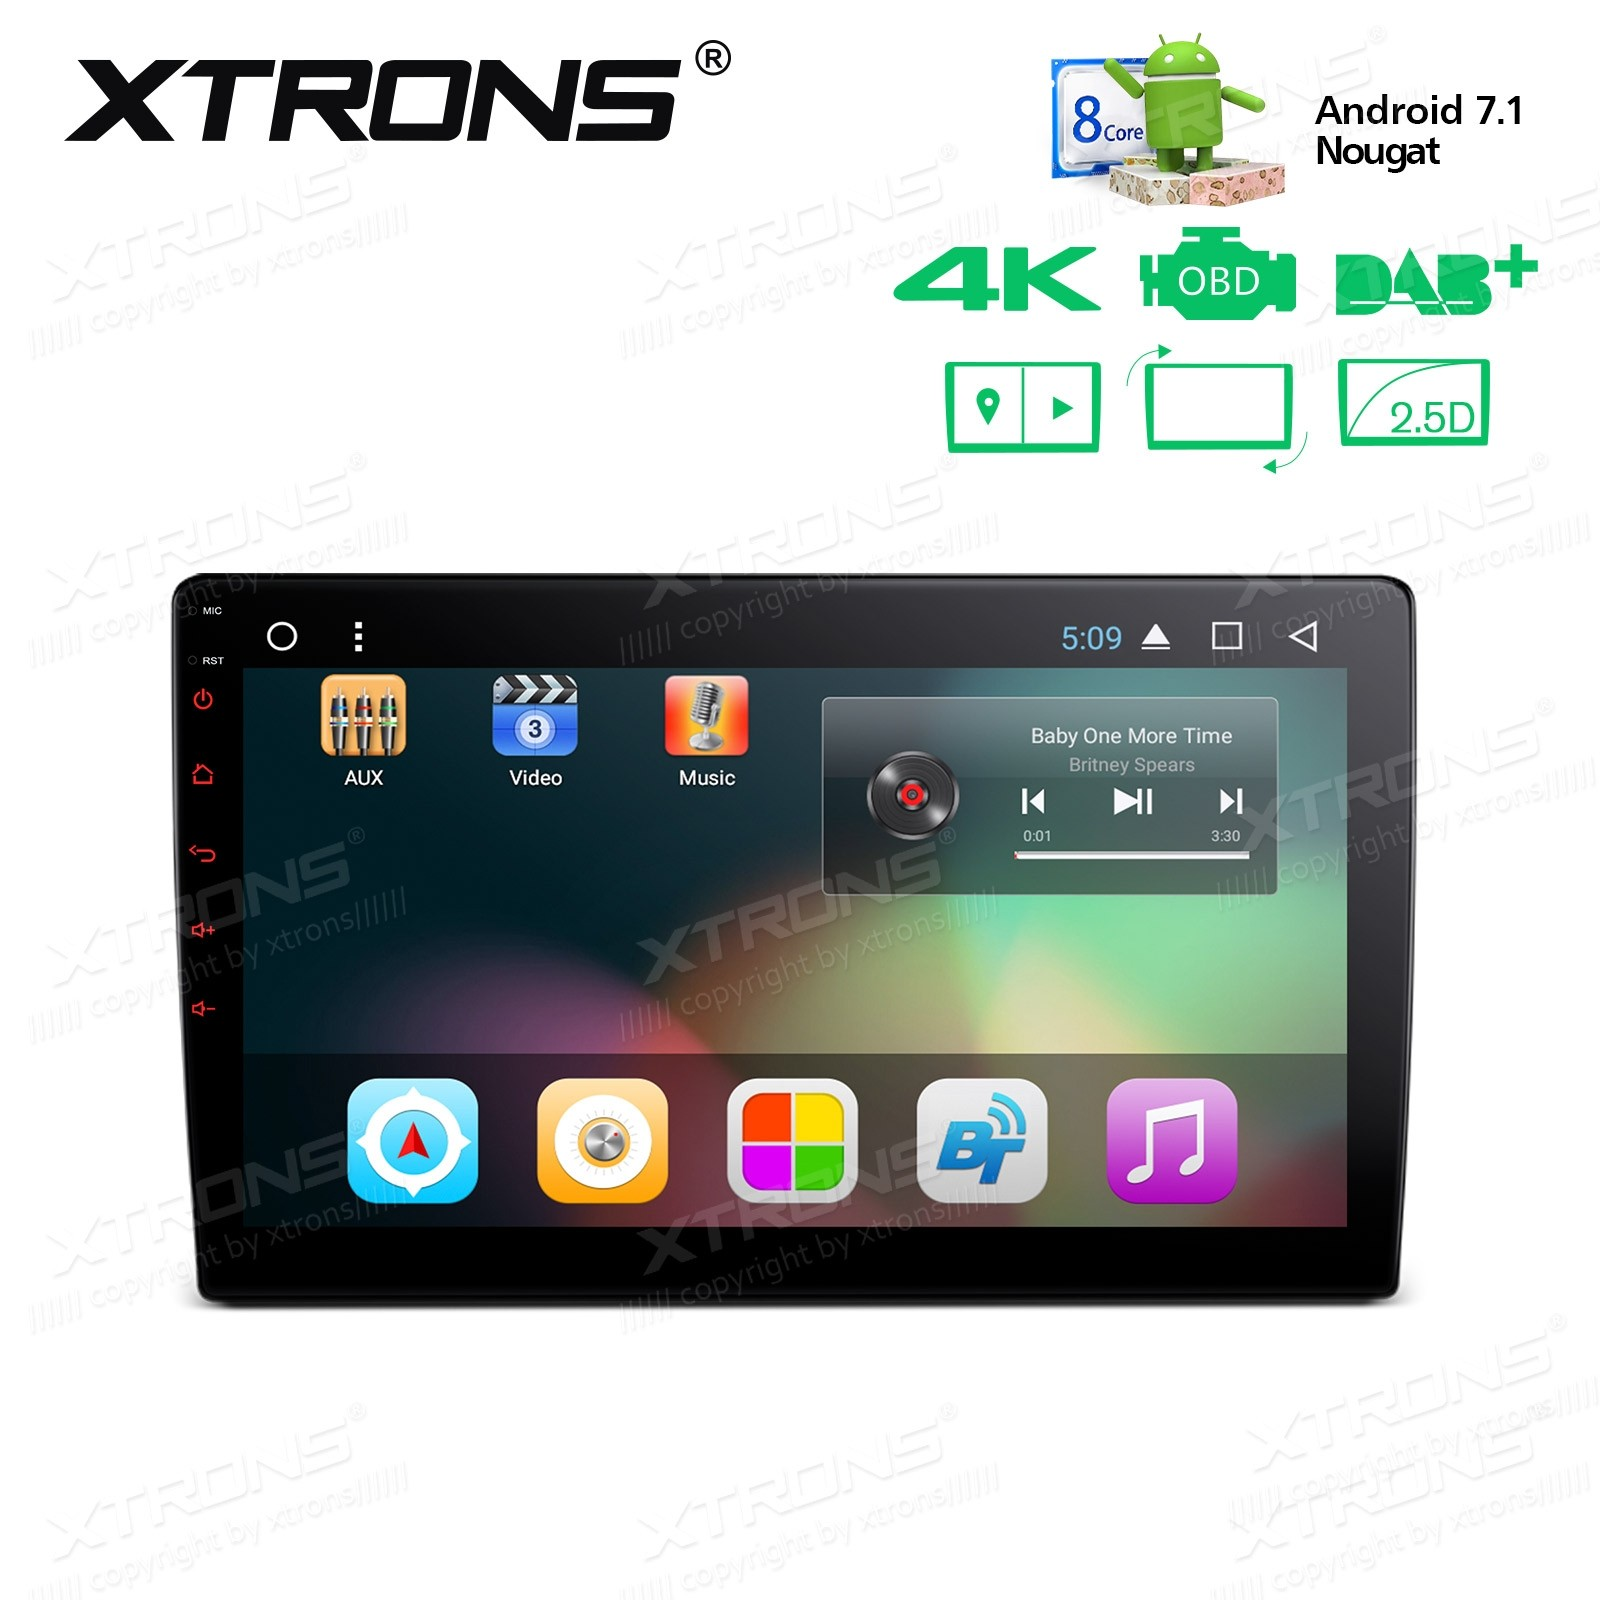 """10.1"""" Android 7.1 Nougat 32GB ROM + 2GB DDR3 RAM Octa-Core Rotatable Face Panel 2.5D Curved Screen Car Stereo"""